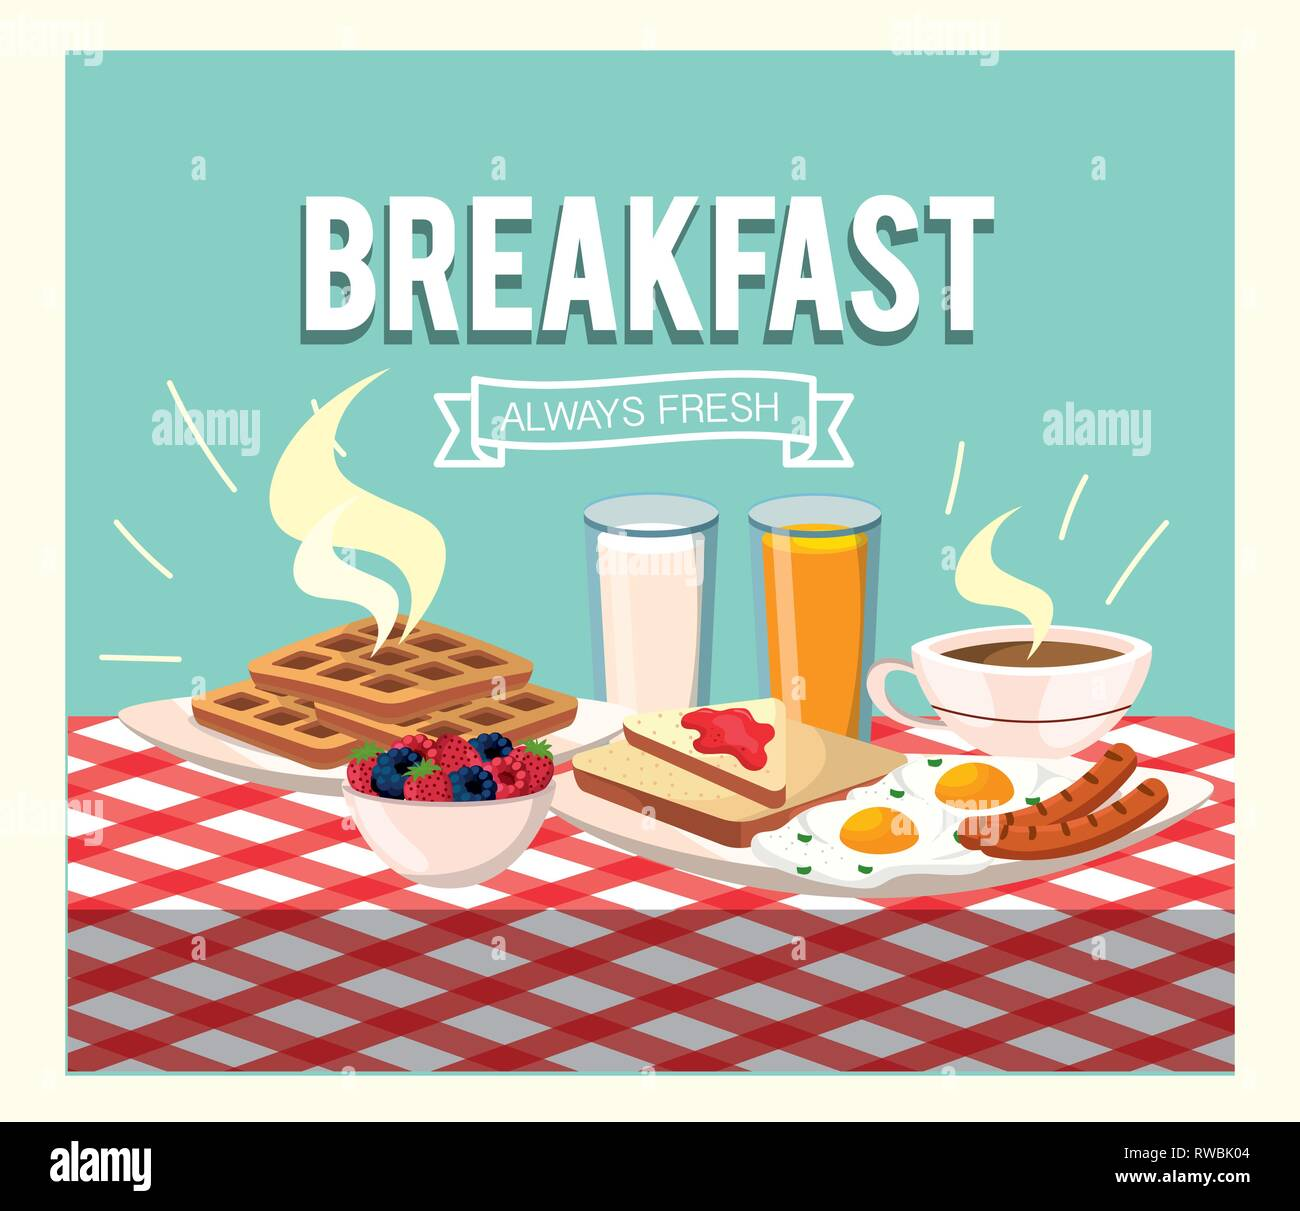 fried eggs with sausages and orange juice - Stock Image